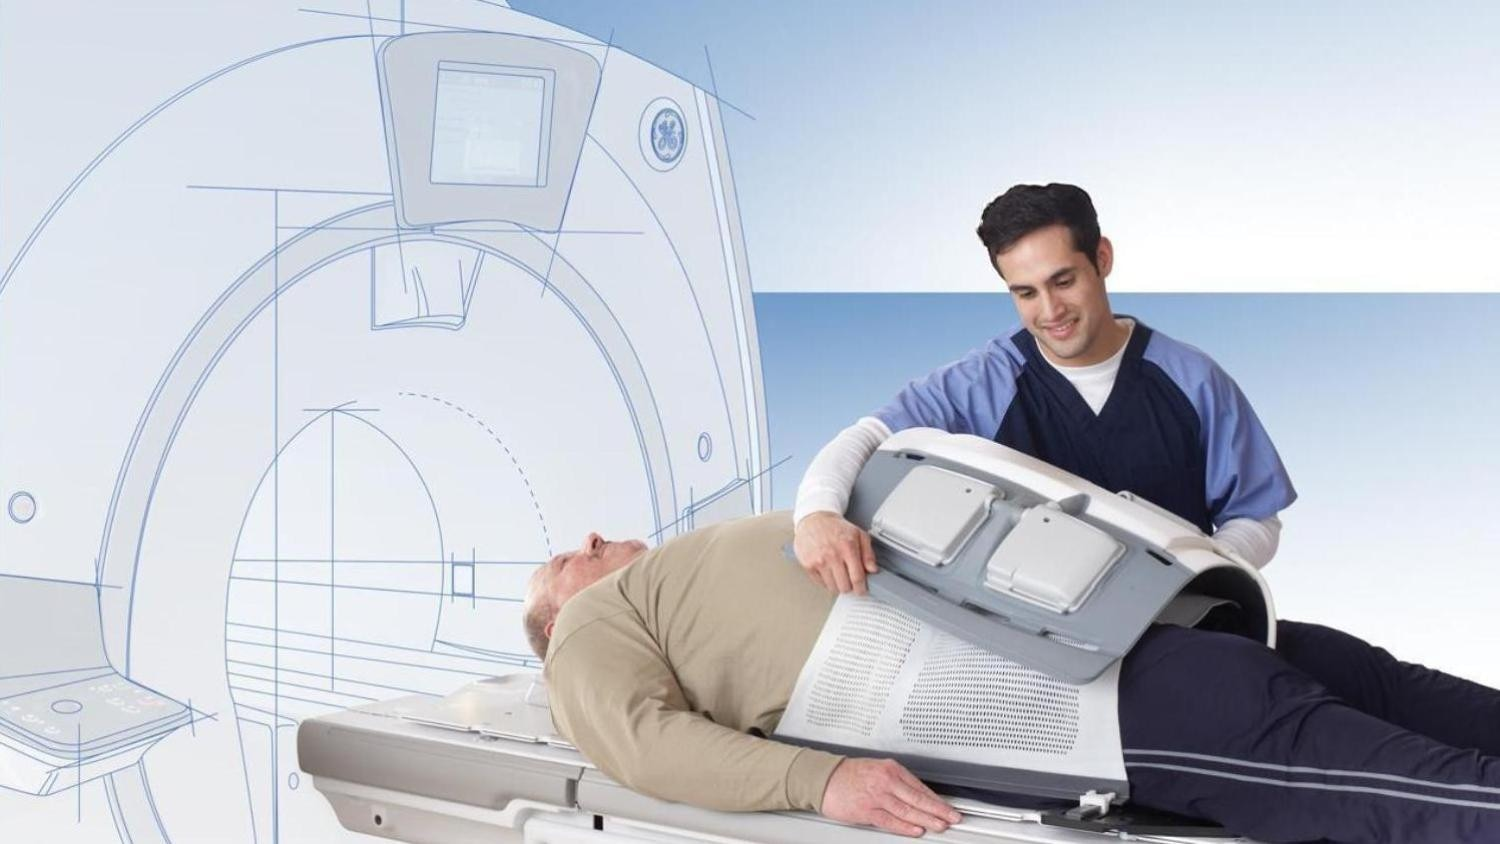 MR radiation oncology suite with patient